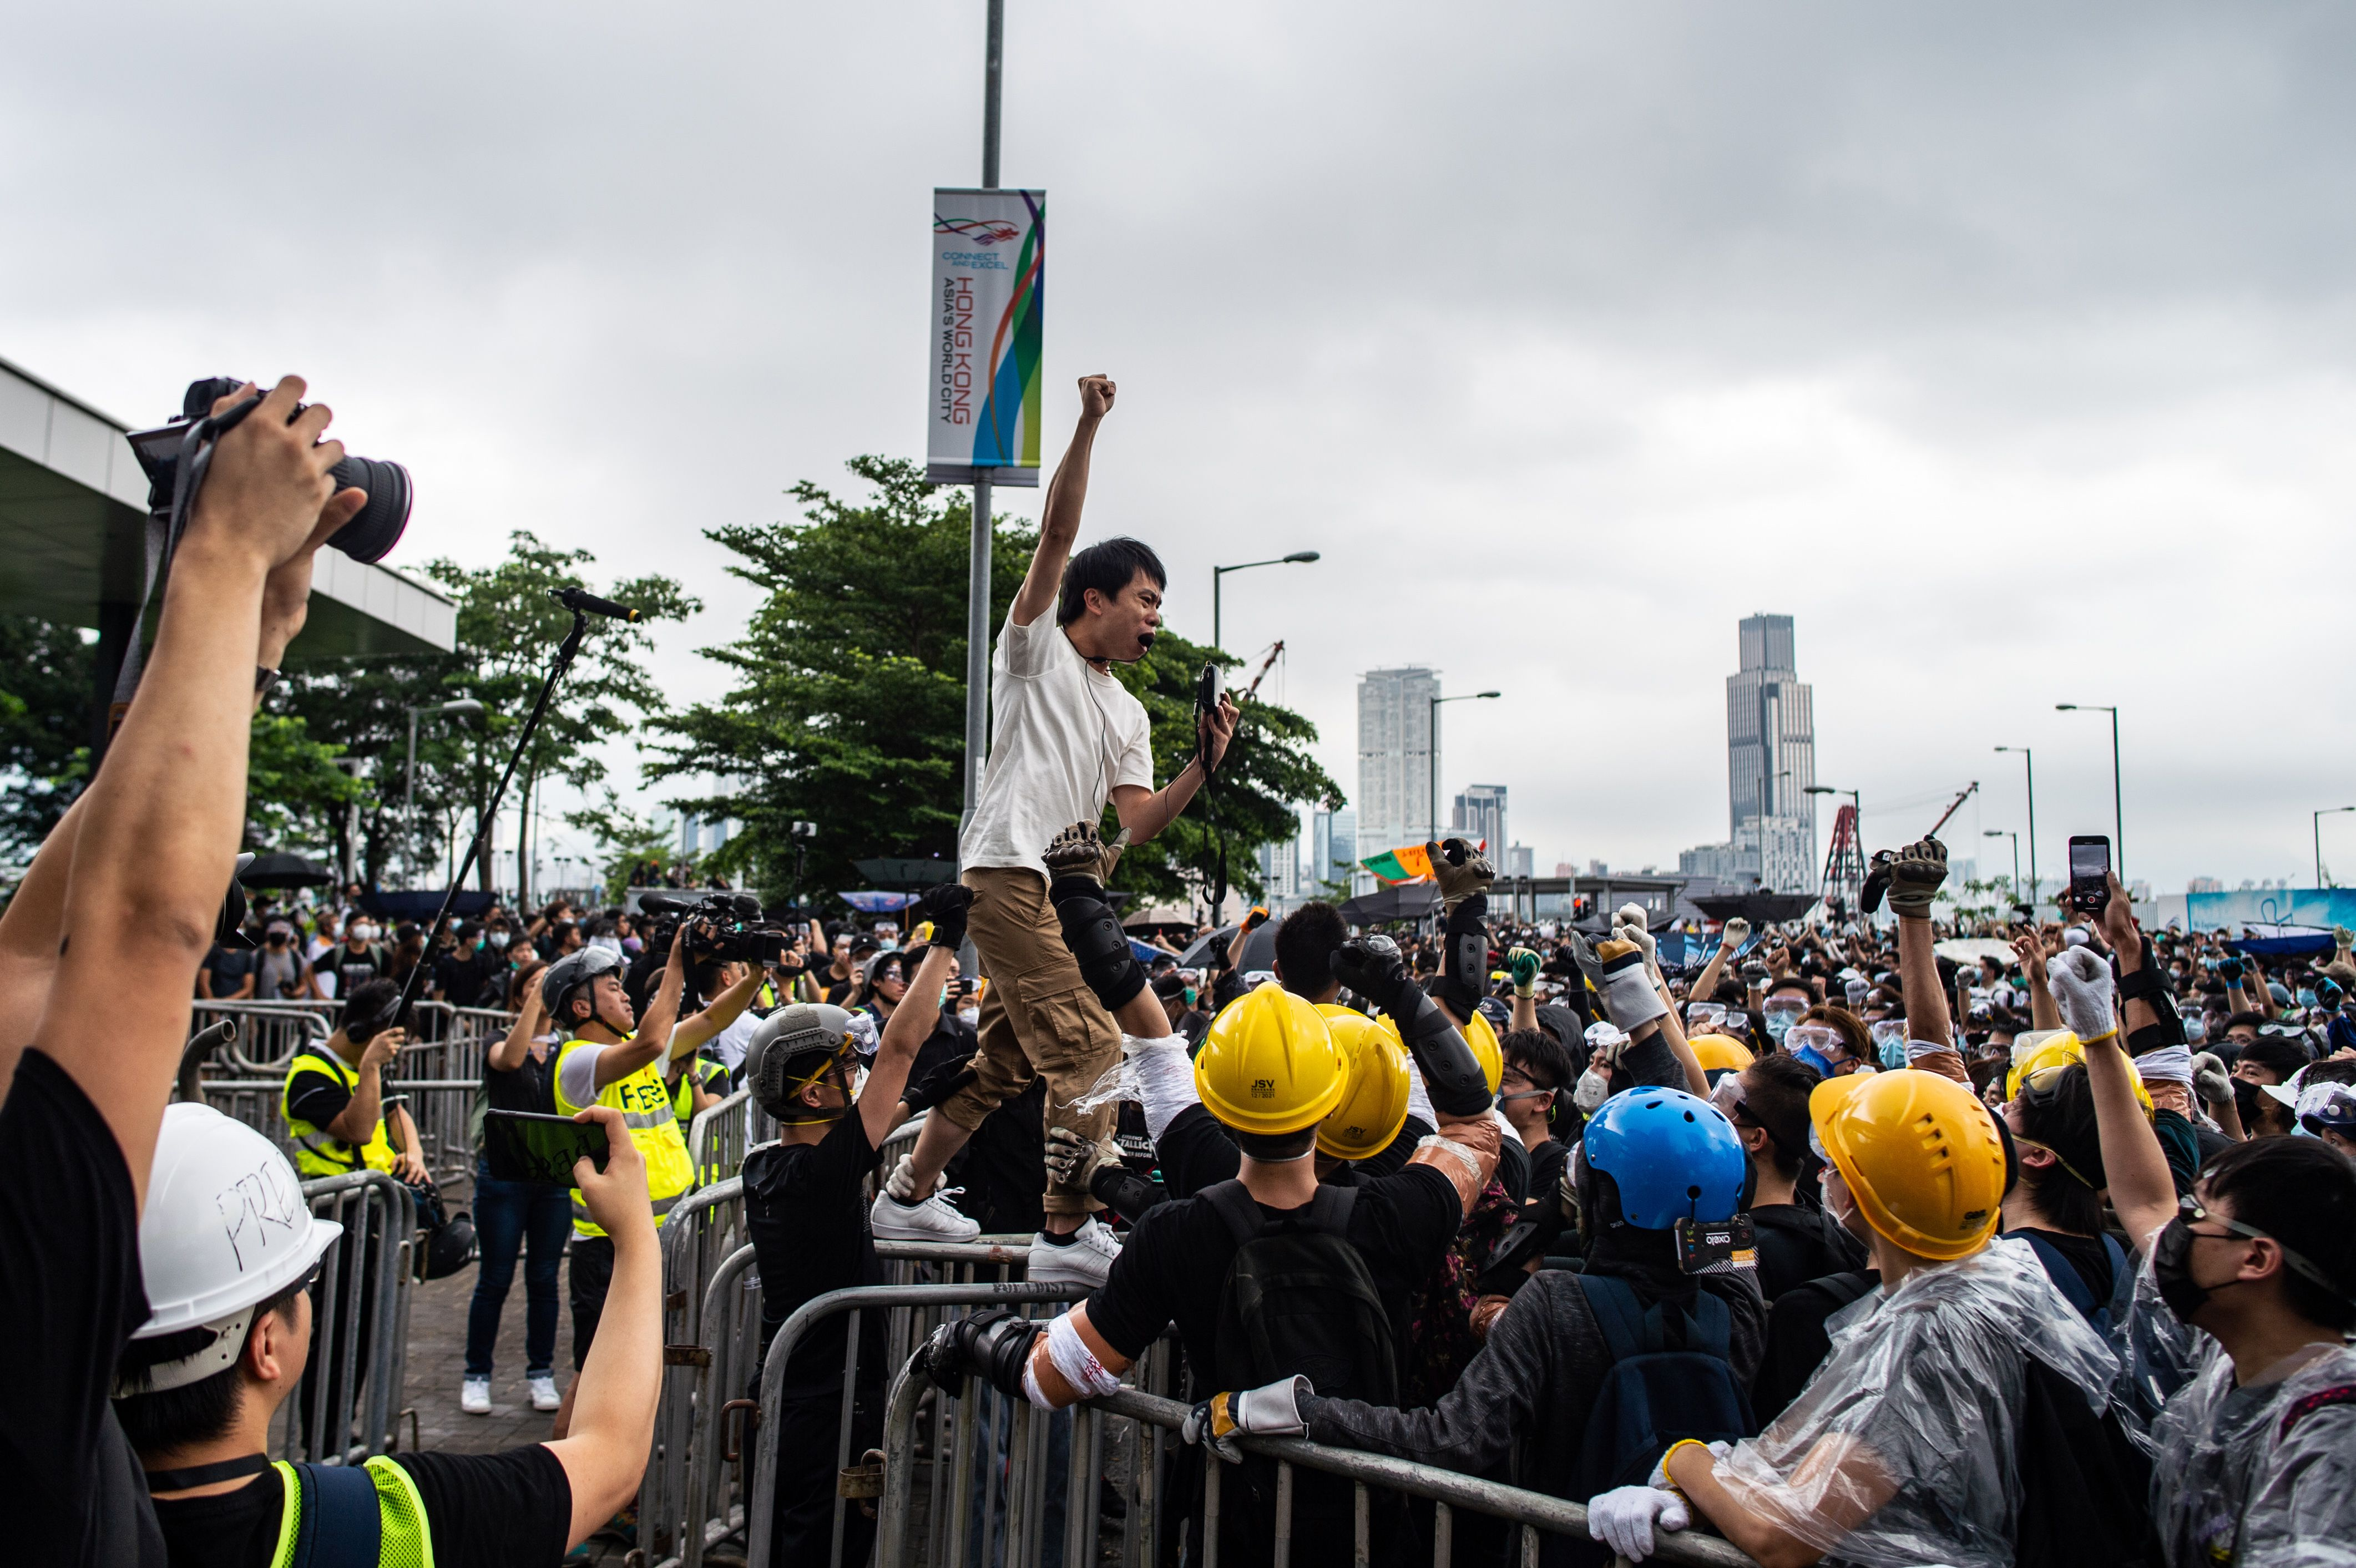 Pro-democracy lawmaker Roy Kwong chants slogans as protesters occupy outside Legislative Council.